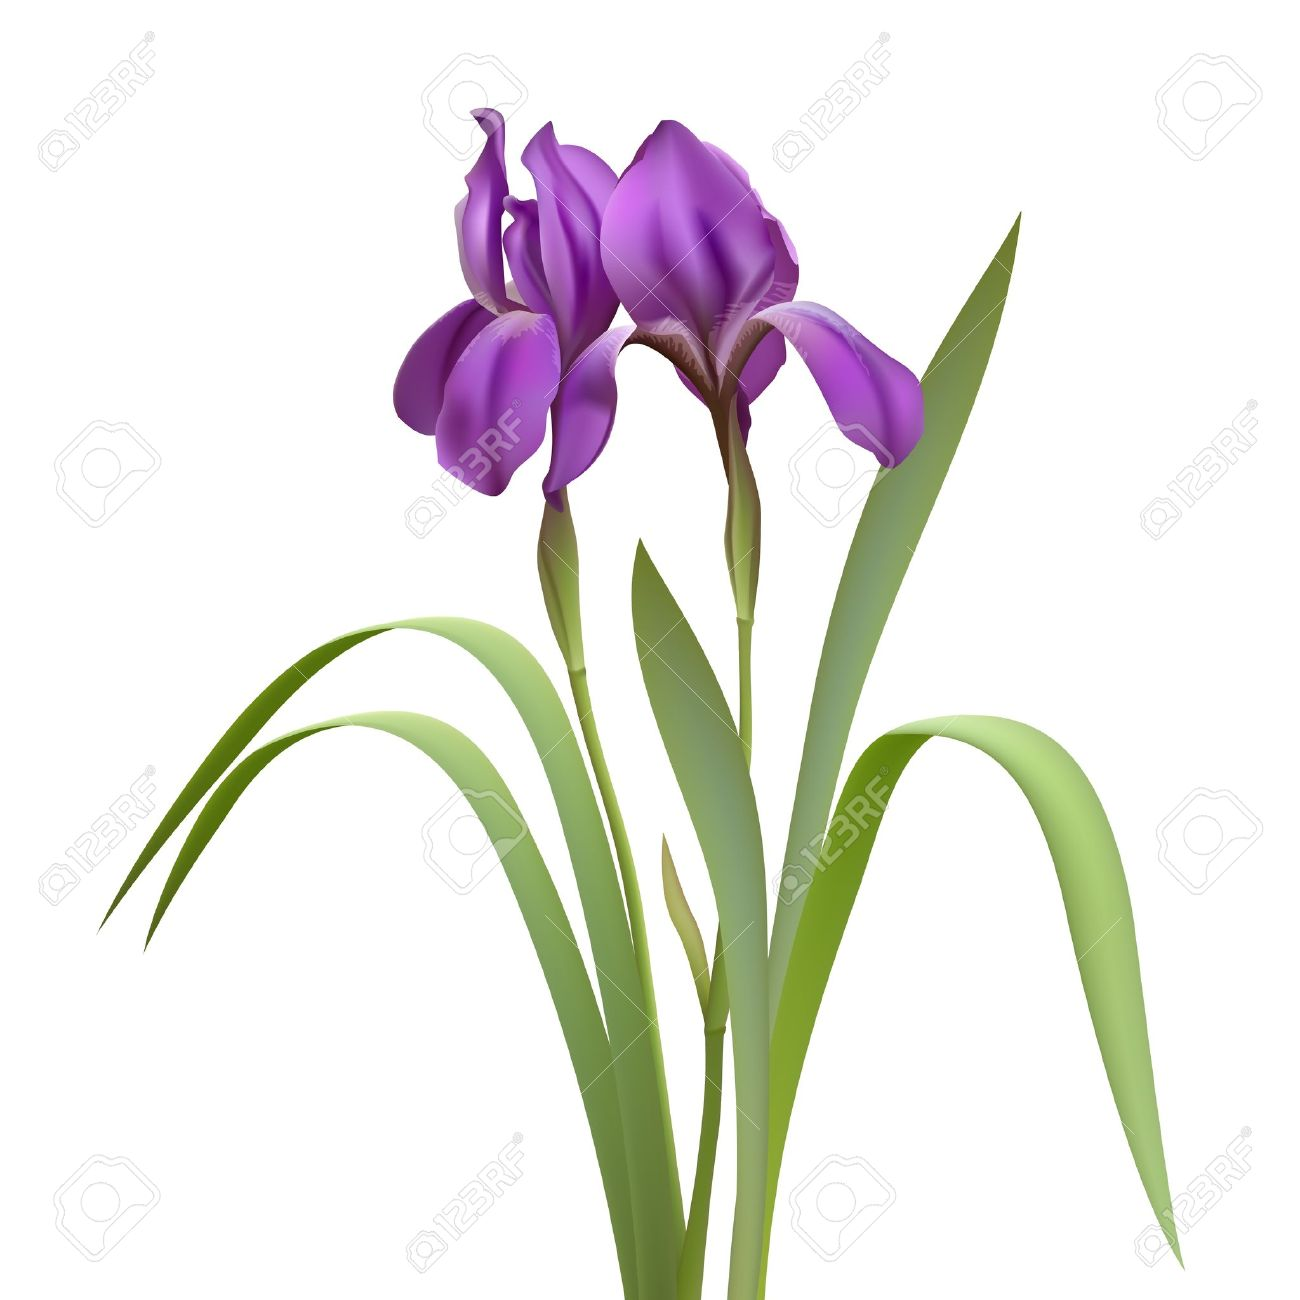 5455 iris flower stock illustrations cliparts and royalty free purple iris flowers isolated on white background vector illustration pronofoot35fo Image collections